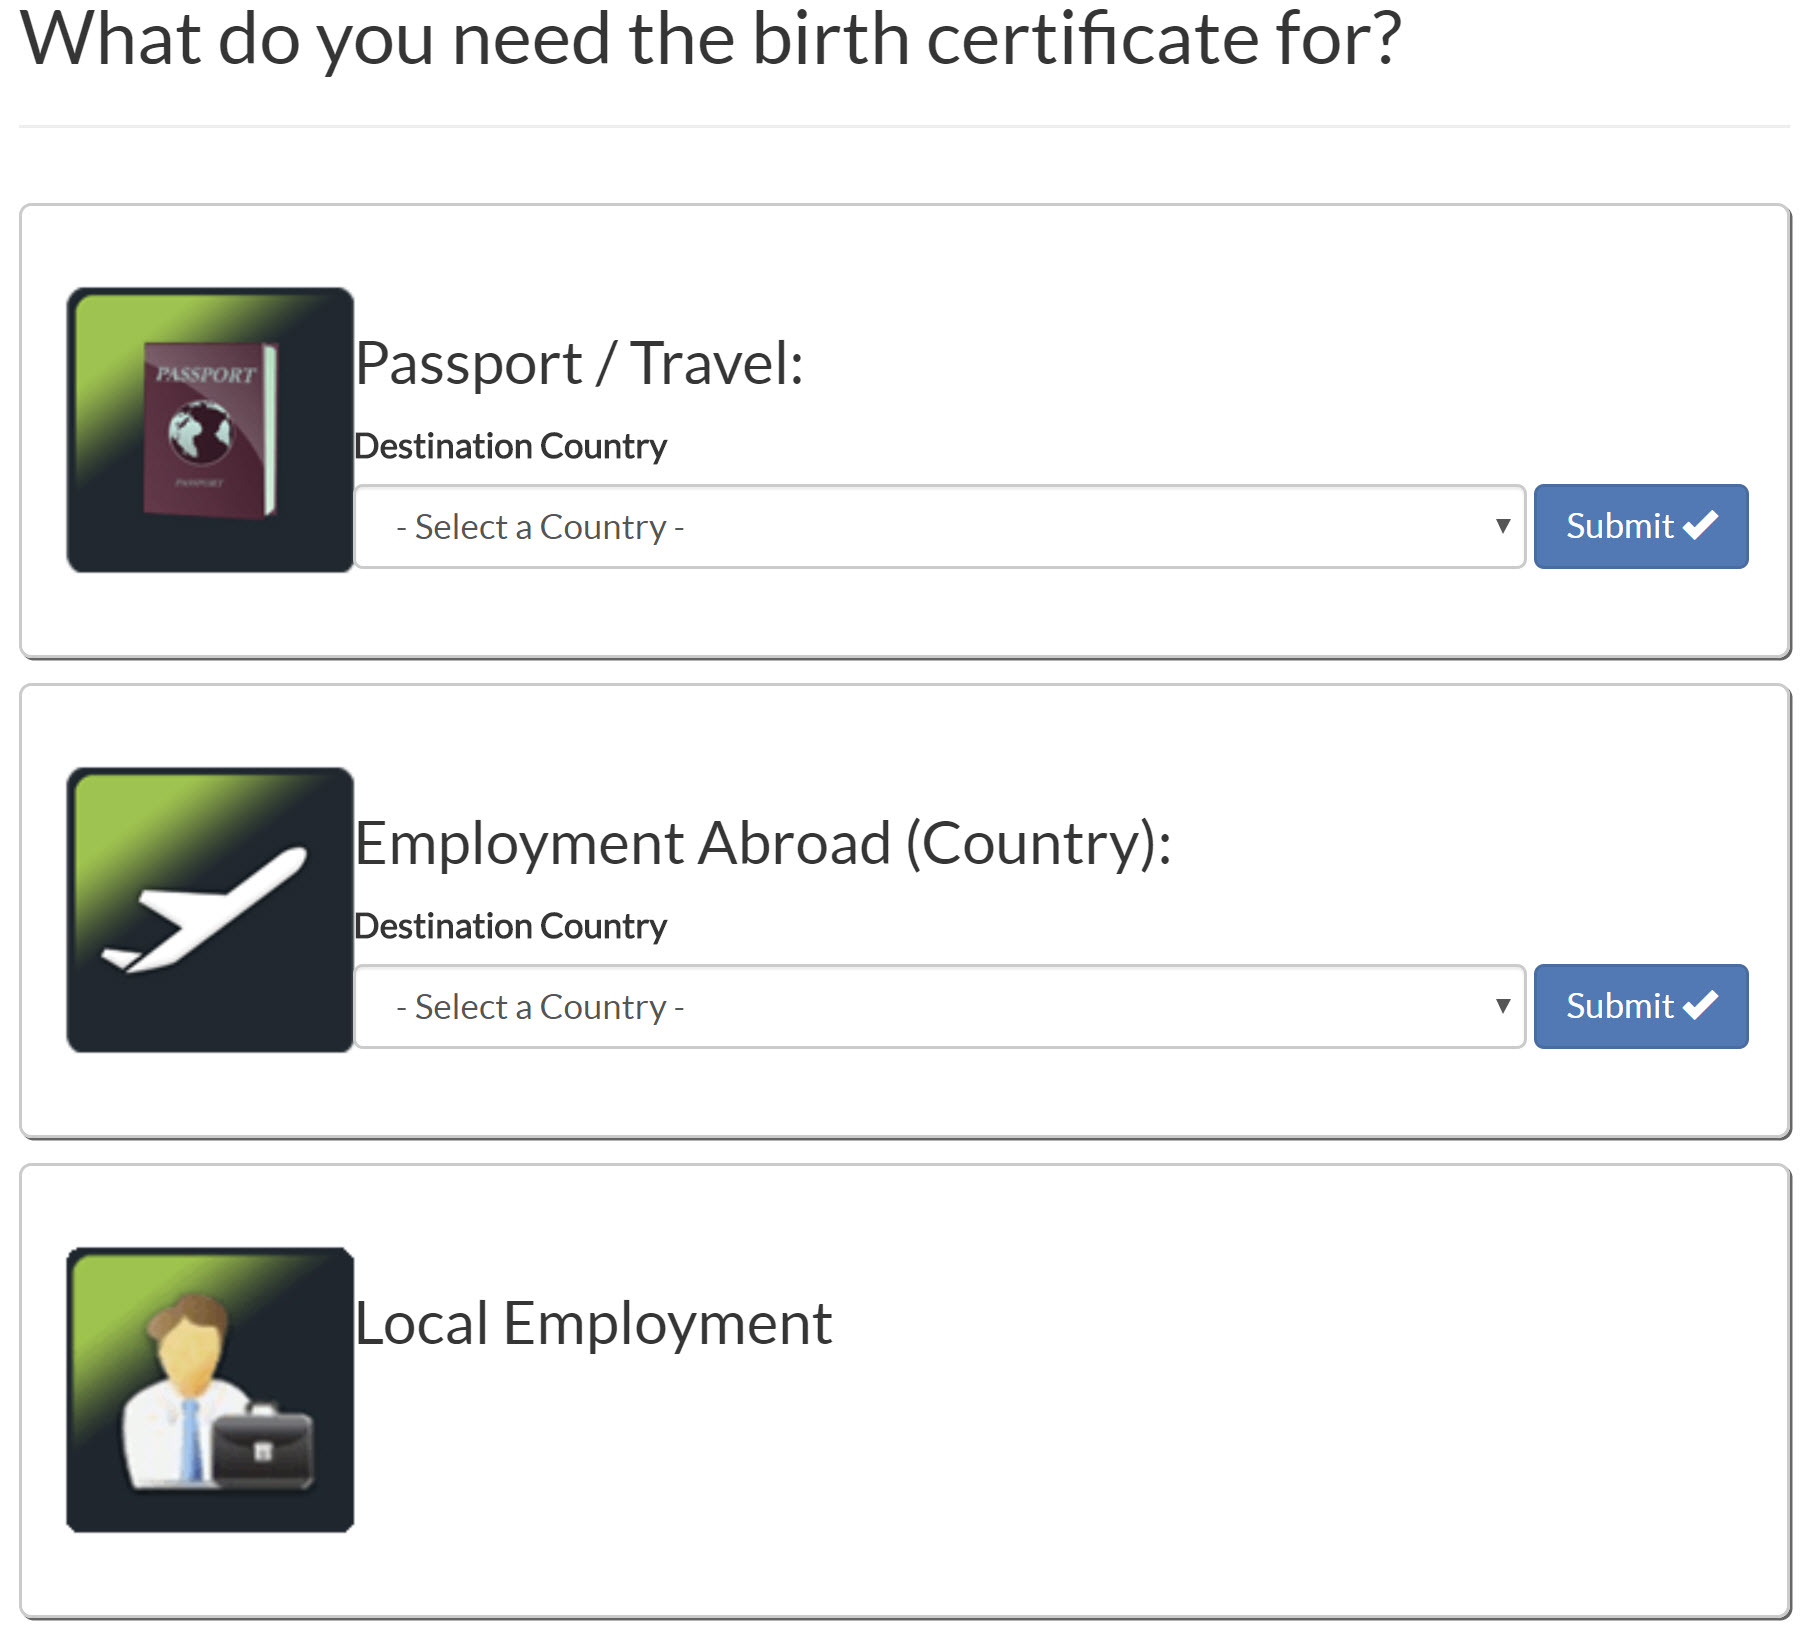 How To Get An Nso Birth Certificate Or Marriage Certificate Online